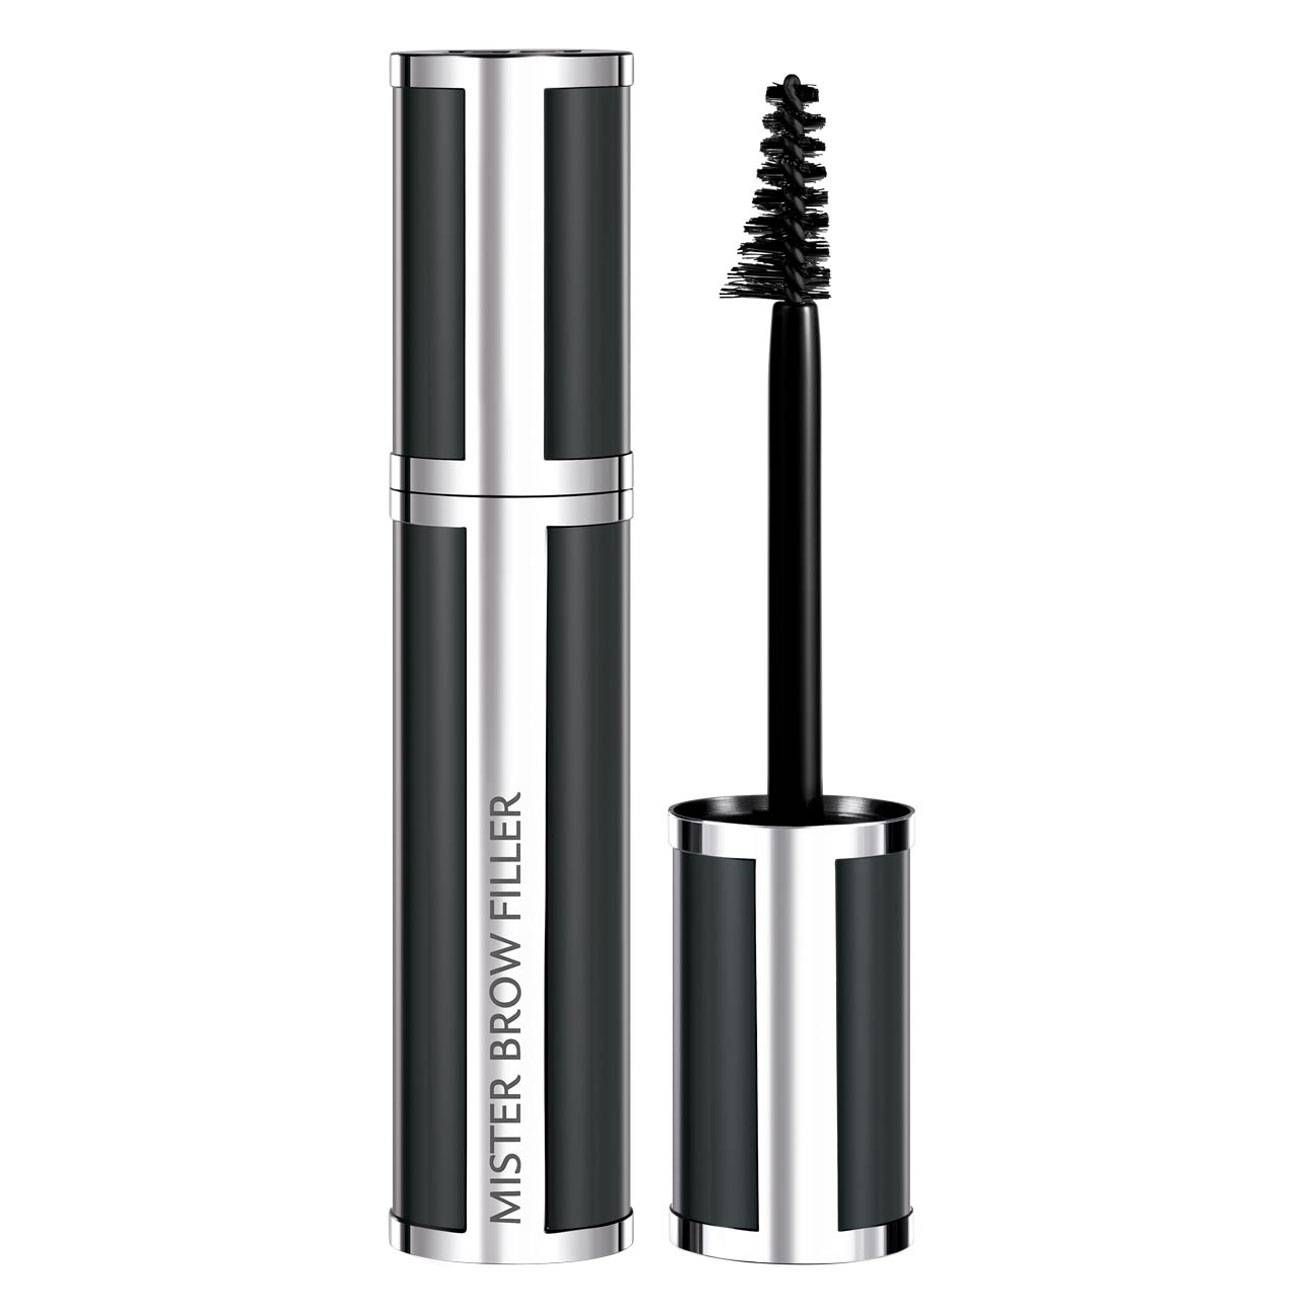 MISTER BROW FILLER 6 G imagine produs